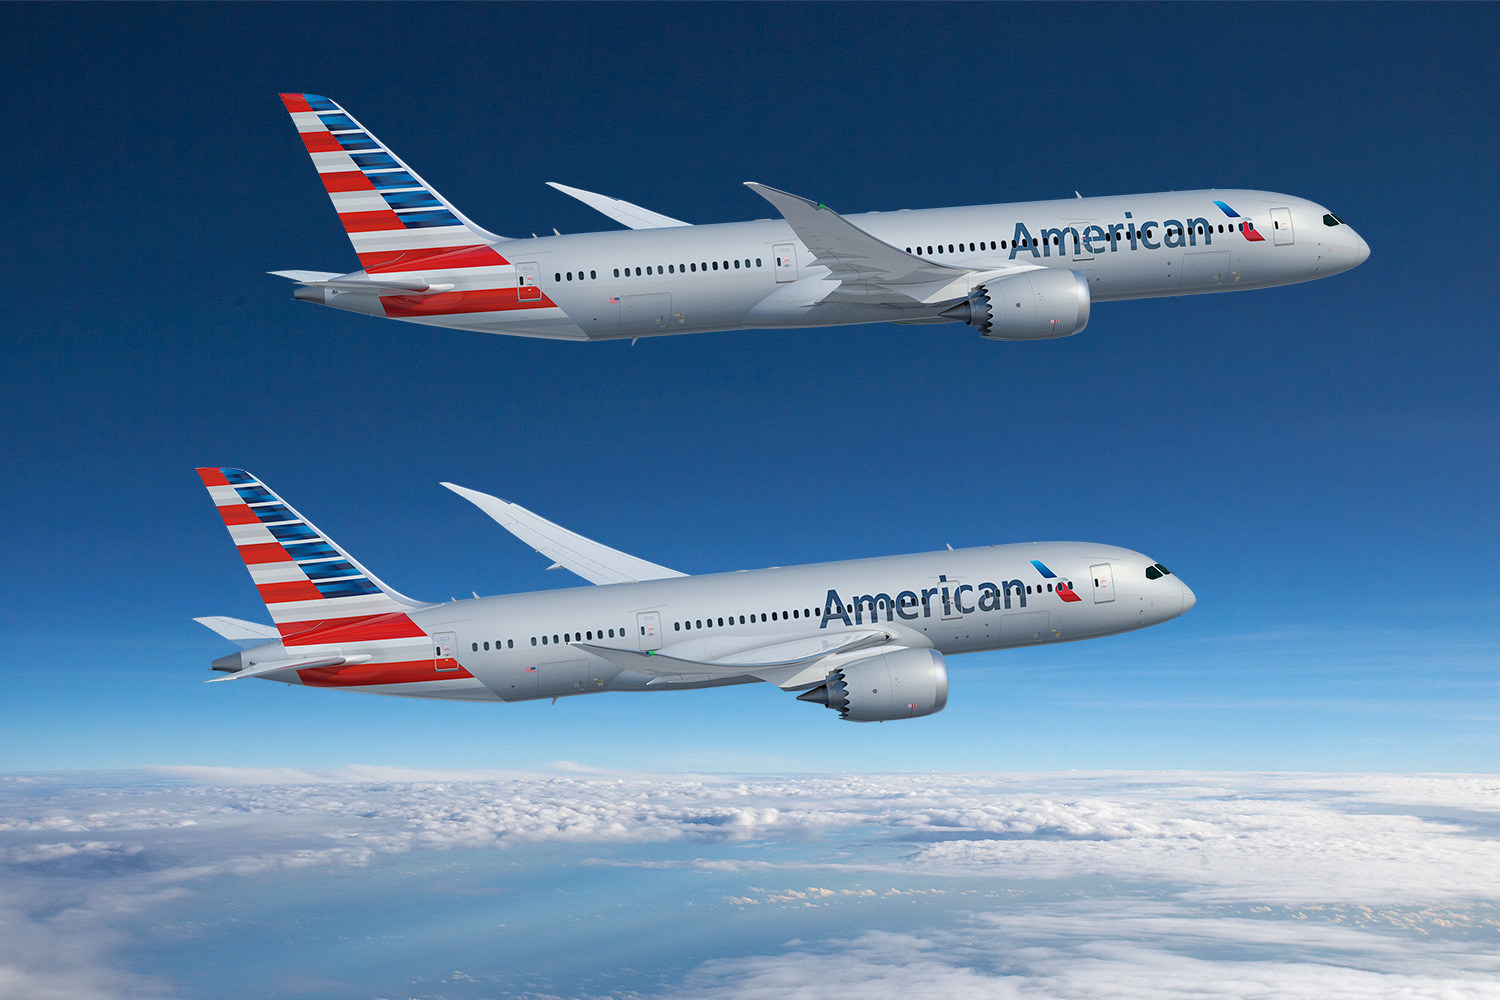 American Airlines To More Than Double Its Dreamliner Fleet